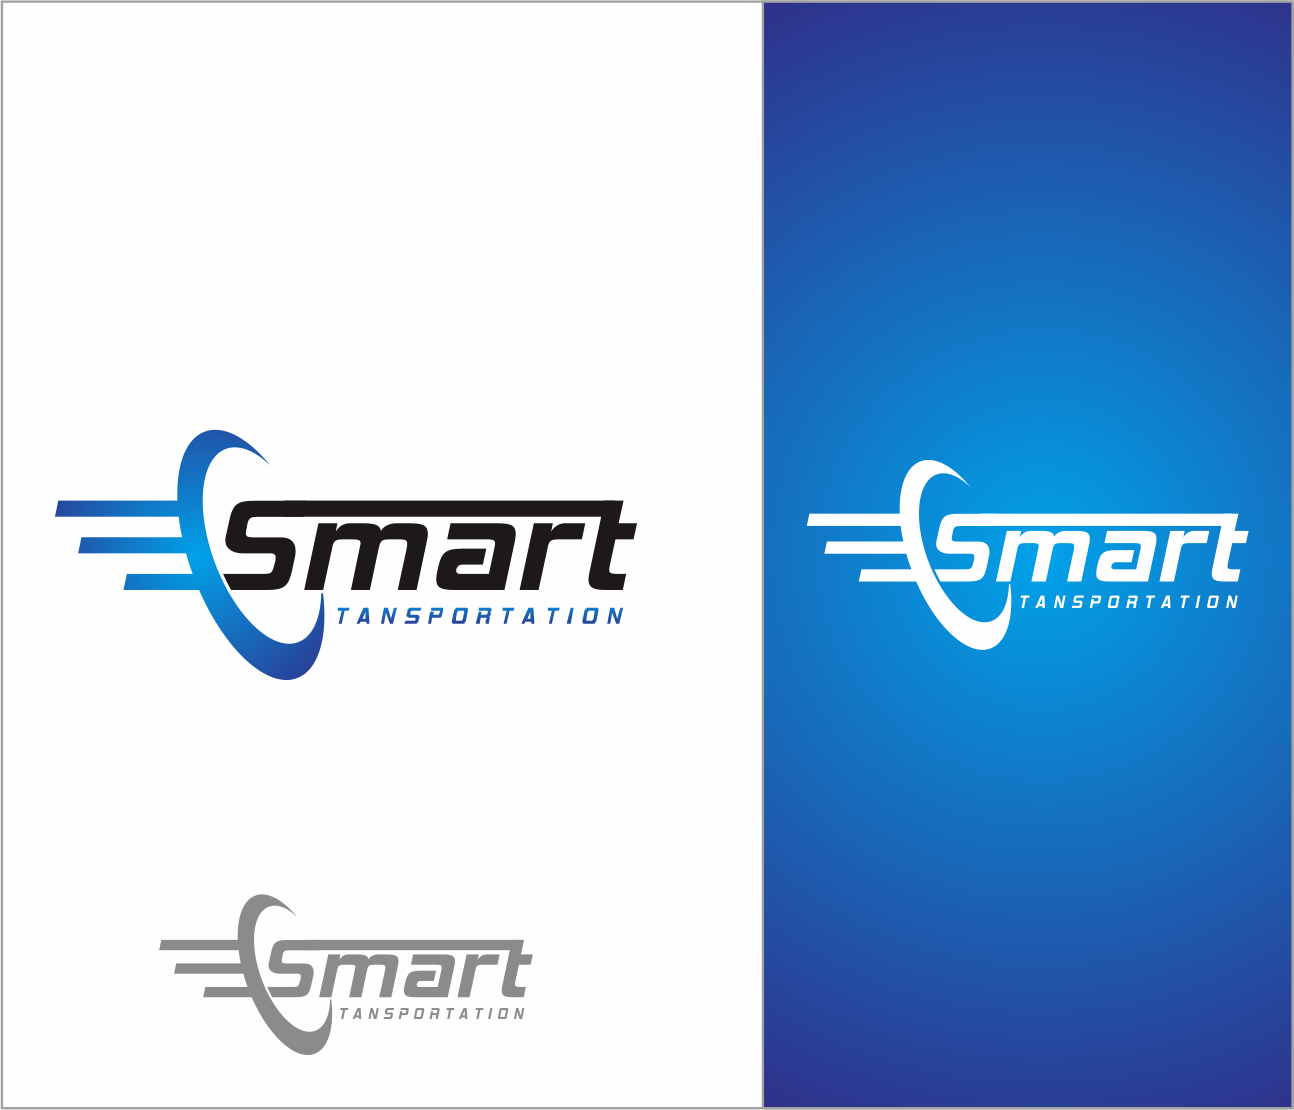 Logo Design by Armada Jamaluddin - Entry No. 207 in the Logo Design Contest Imaginative Logo Design for Smart Transportation.